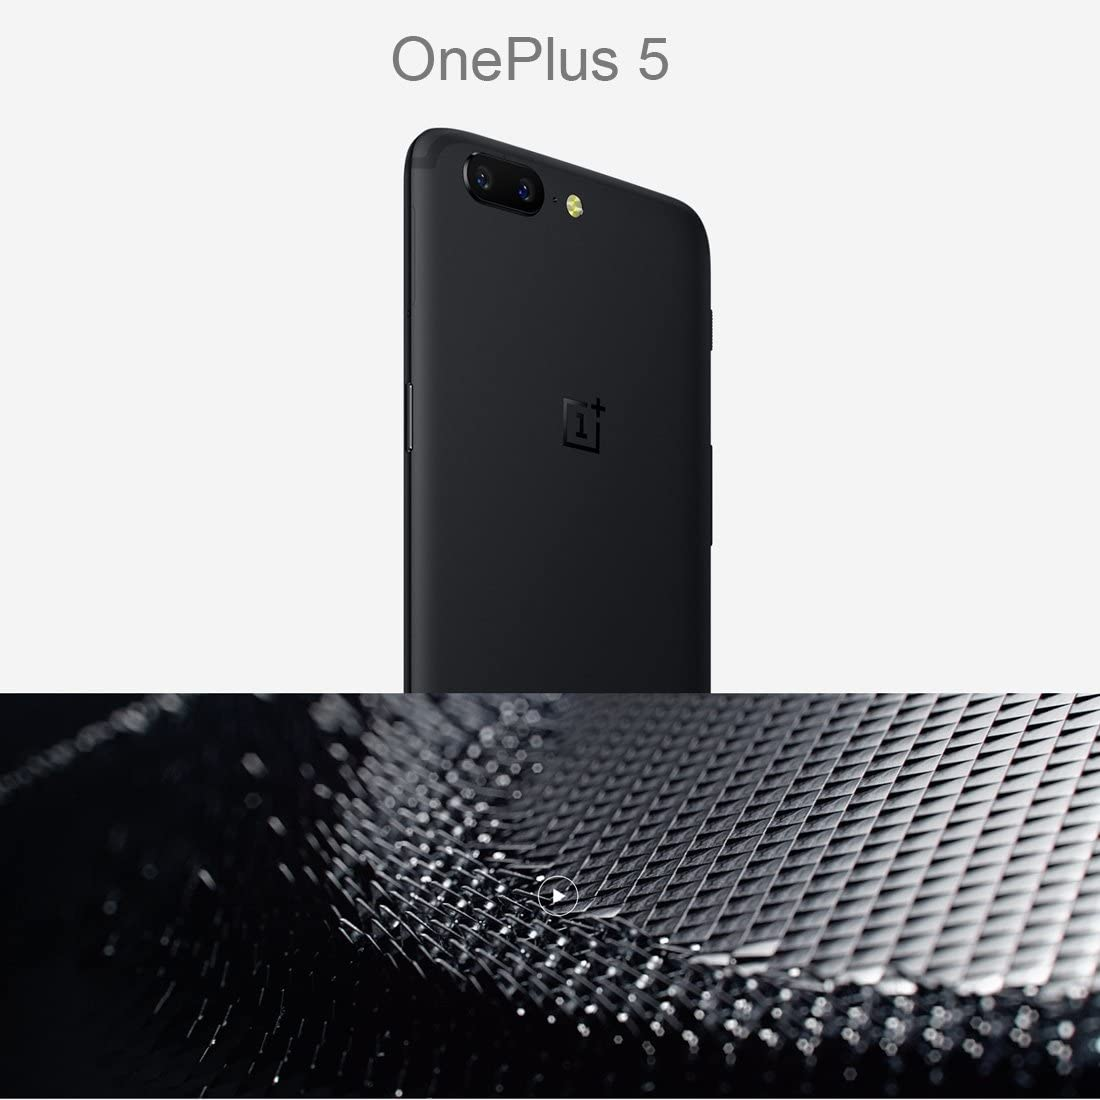 Snapdragon 835 Octa Core up to 2.45GHz WCDMA /& GSM /& FDD-LTE OnePlus 5 8GB+128GB 5.5 Inch 2.5D H2OS 3.5 Android Nougat Grey